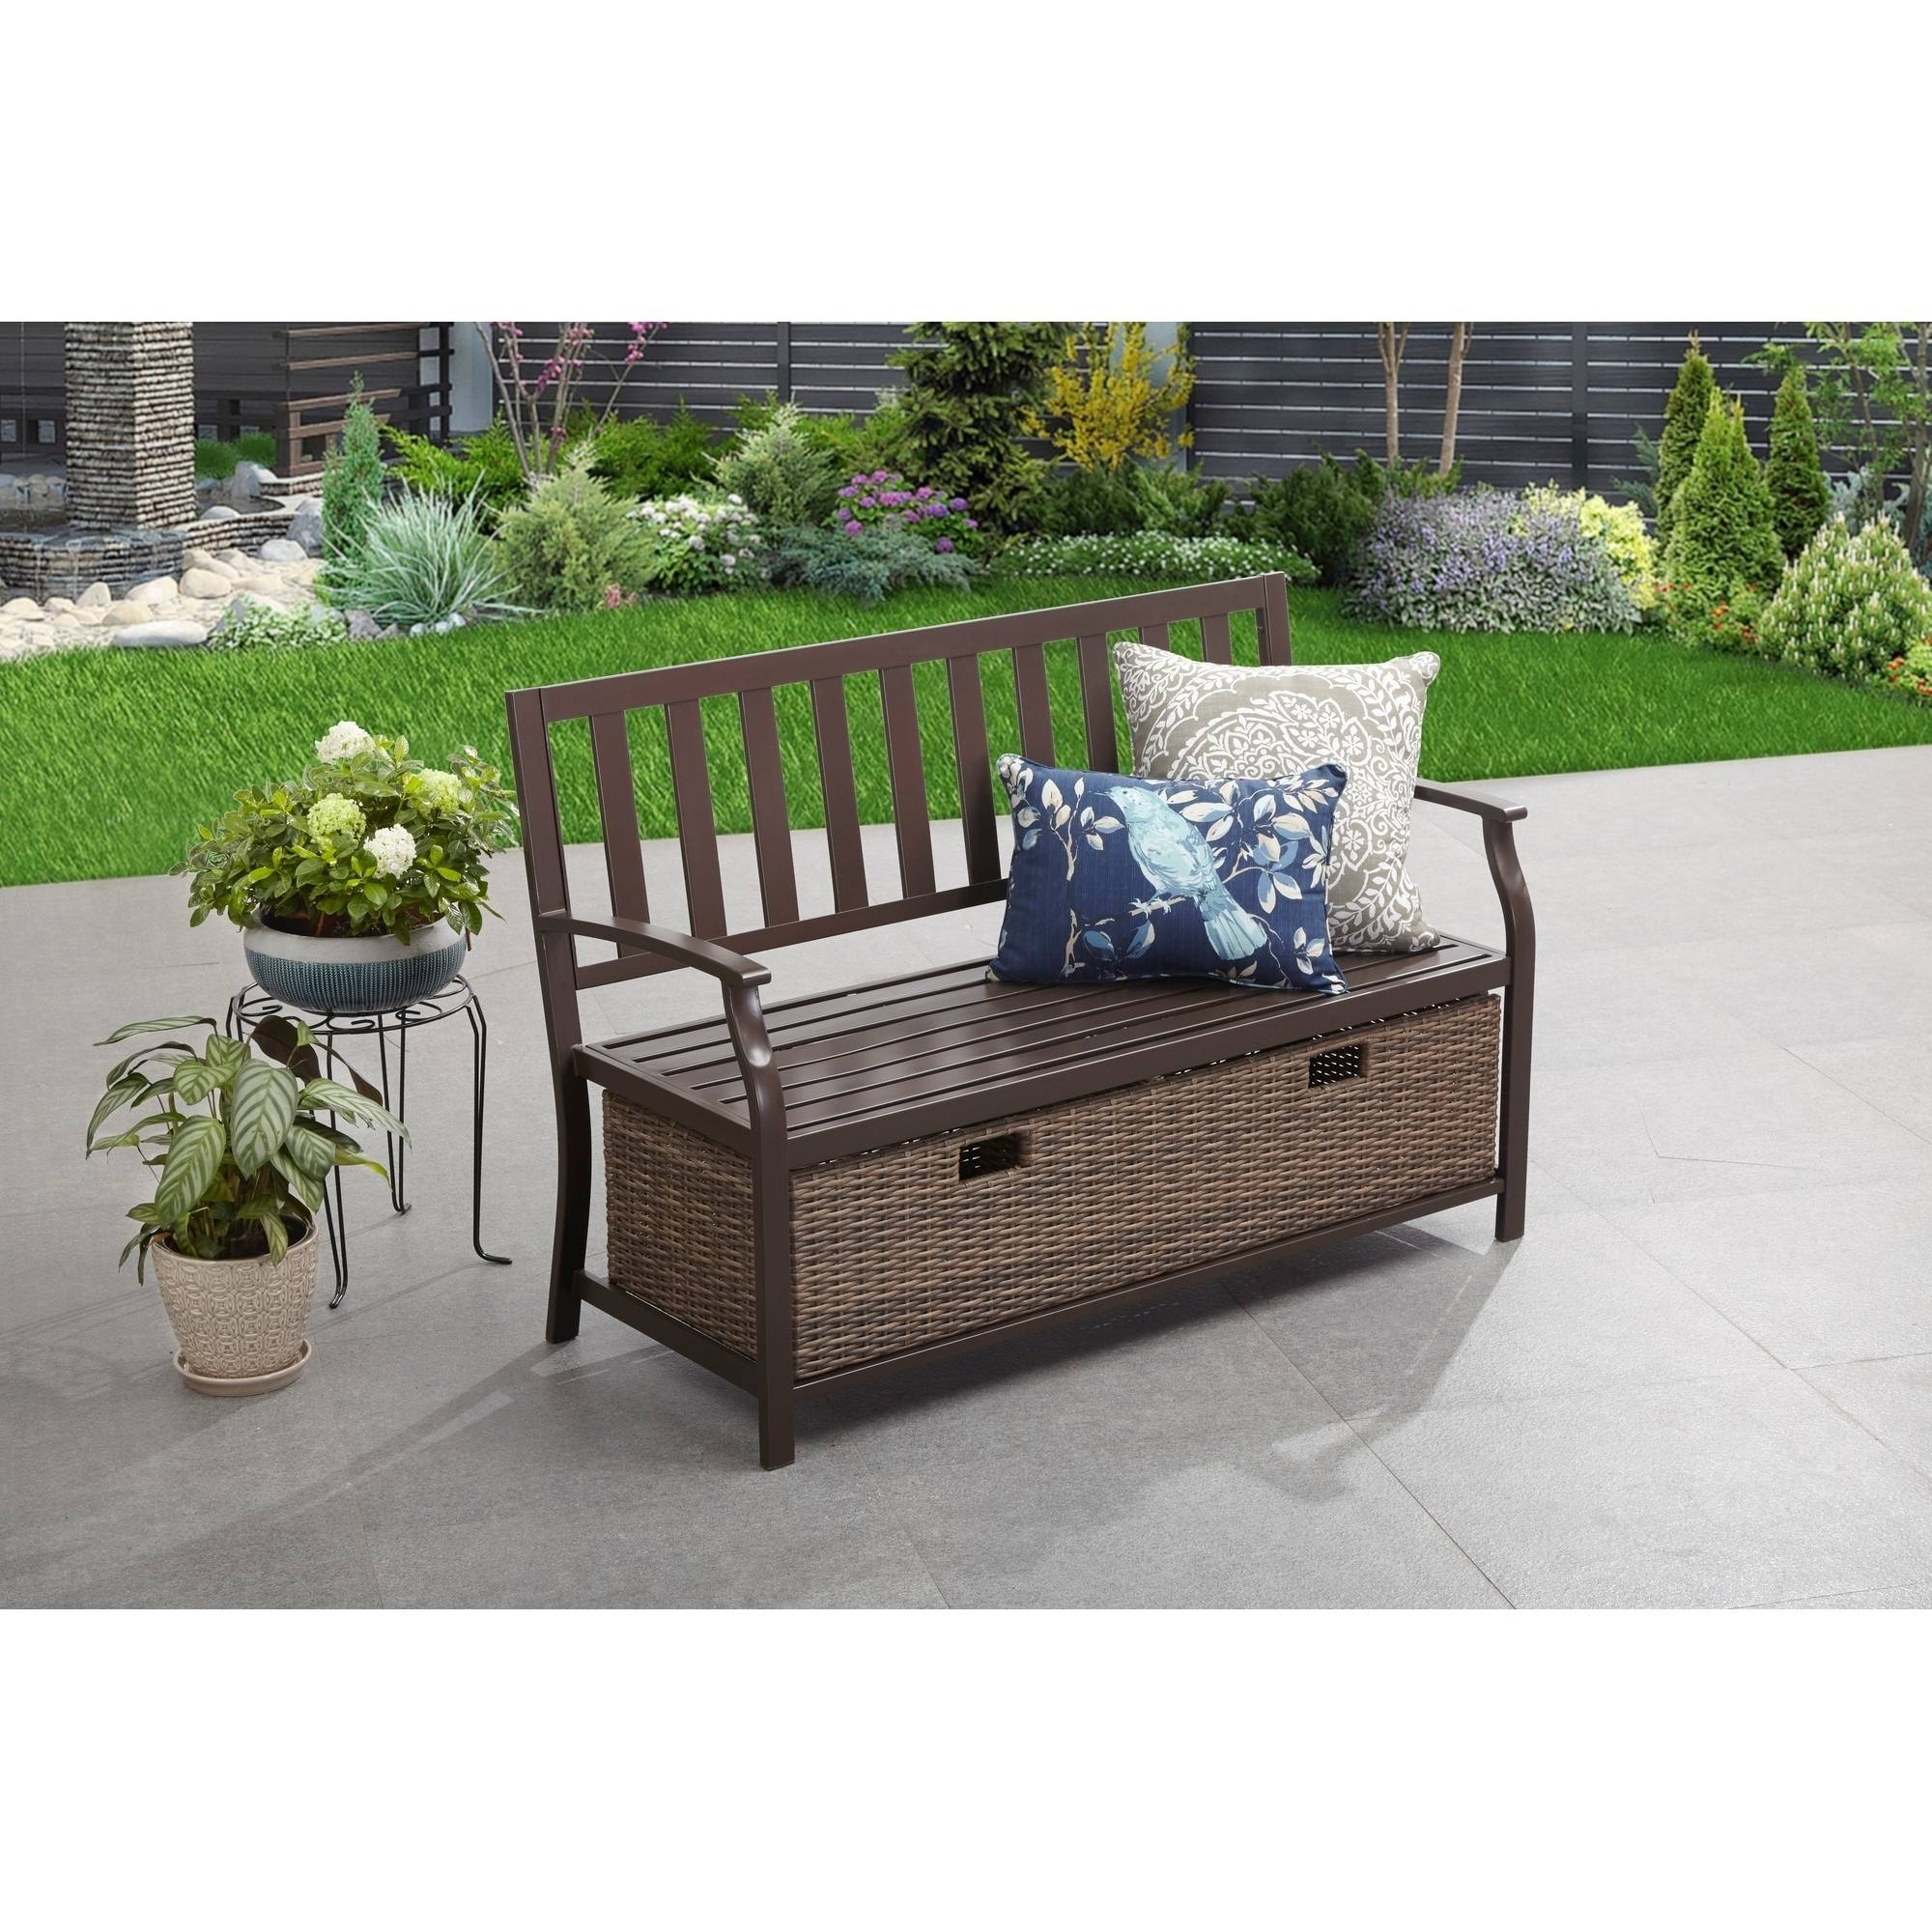 Better Homes And Gardens Camrose Farmhouse Bench With Wicker